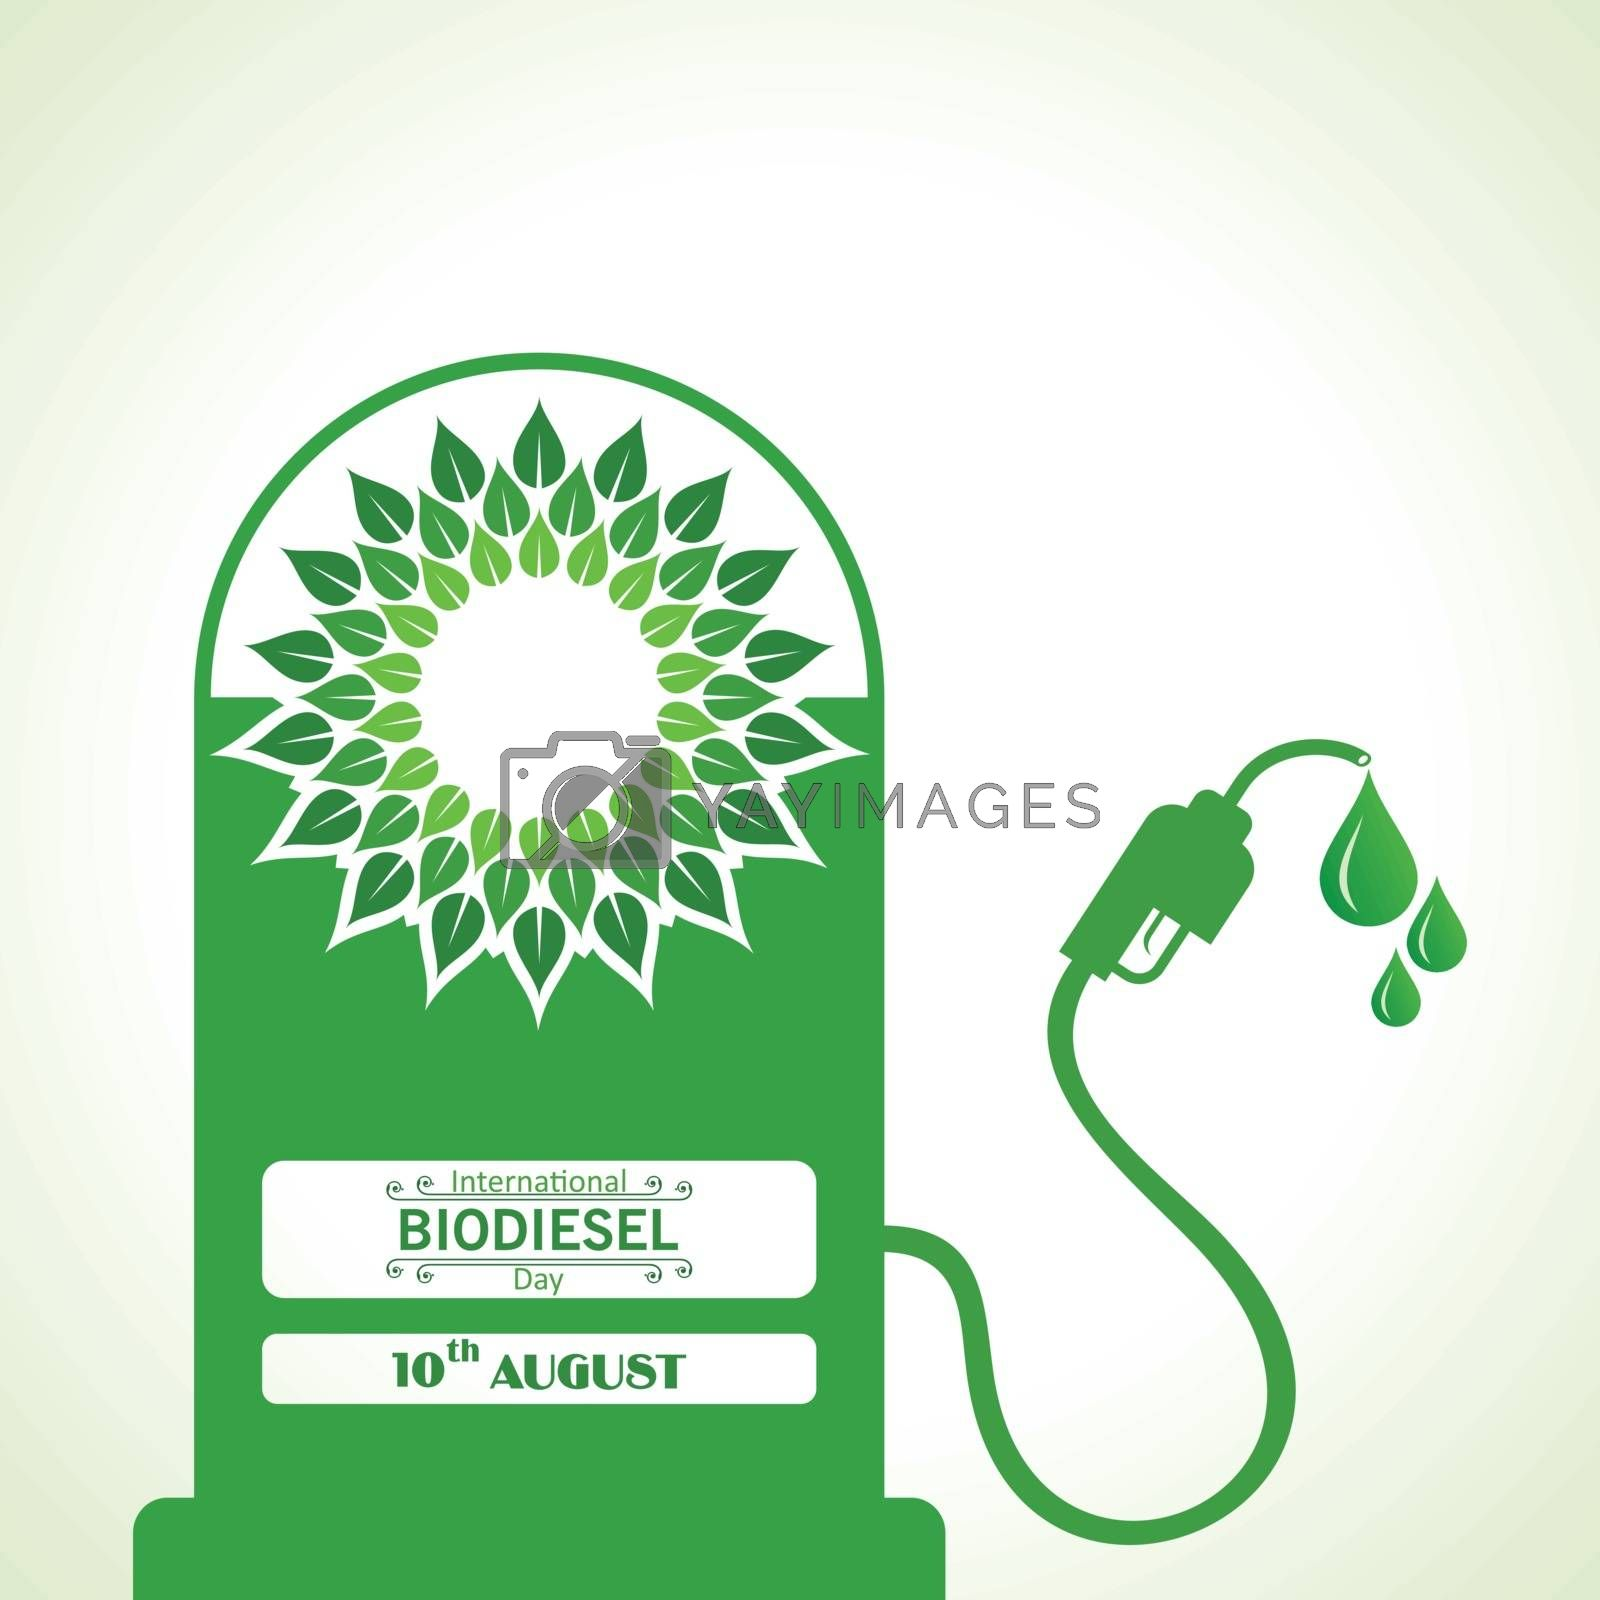 Royalty free image of International Biodiesel Day Greeting for Eco Environment - 10 August by graphicsdunia4you